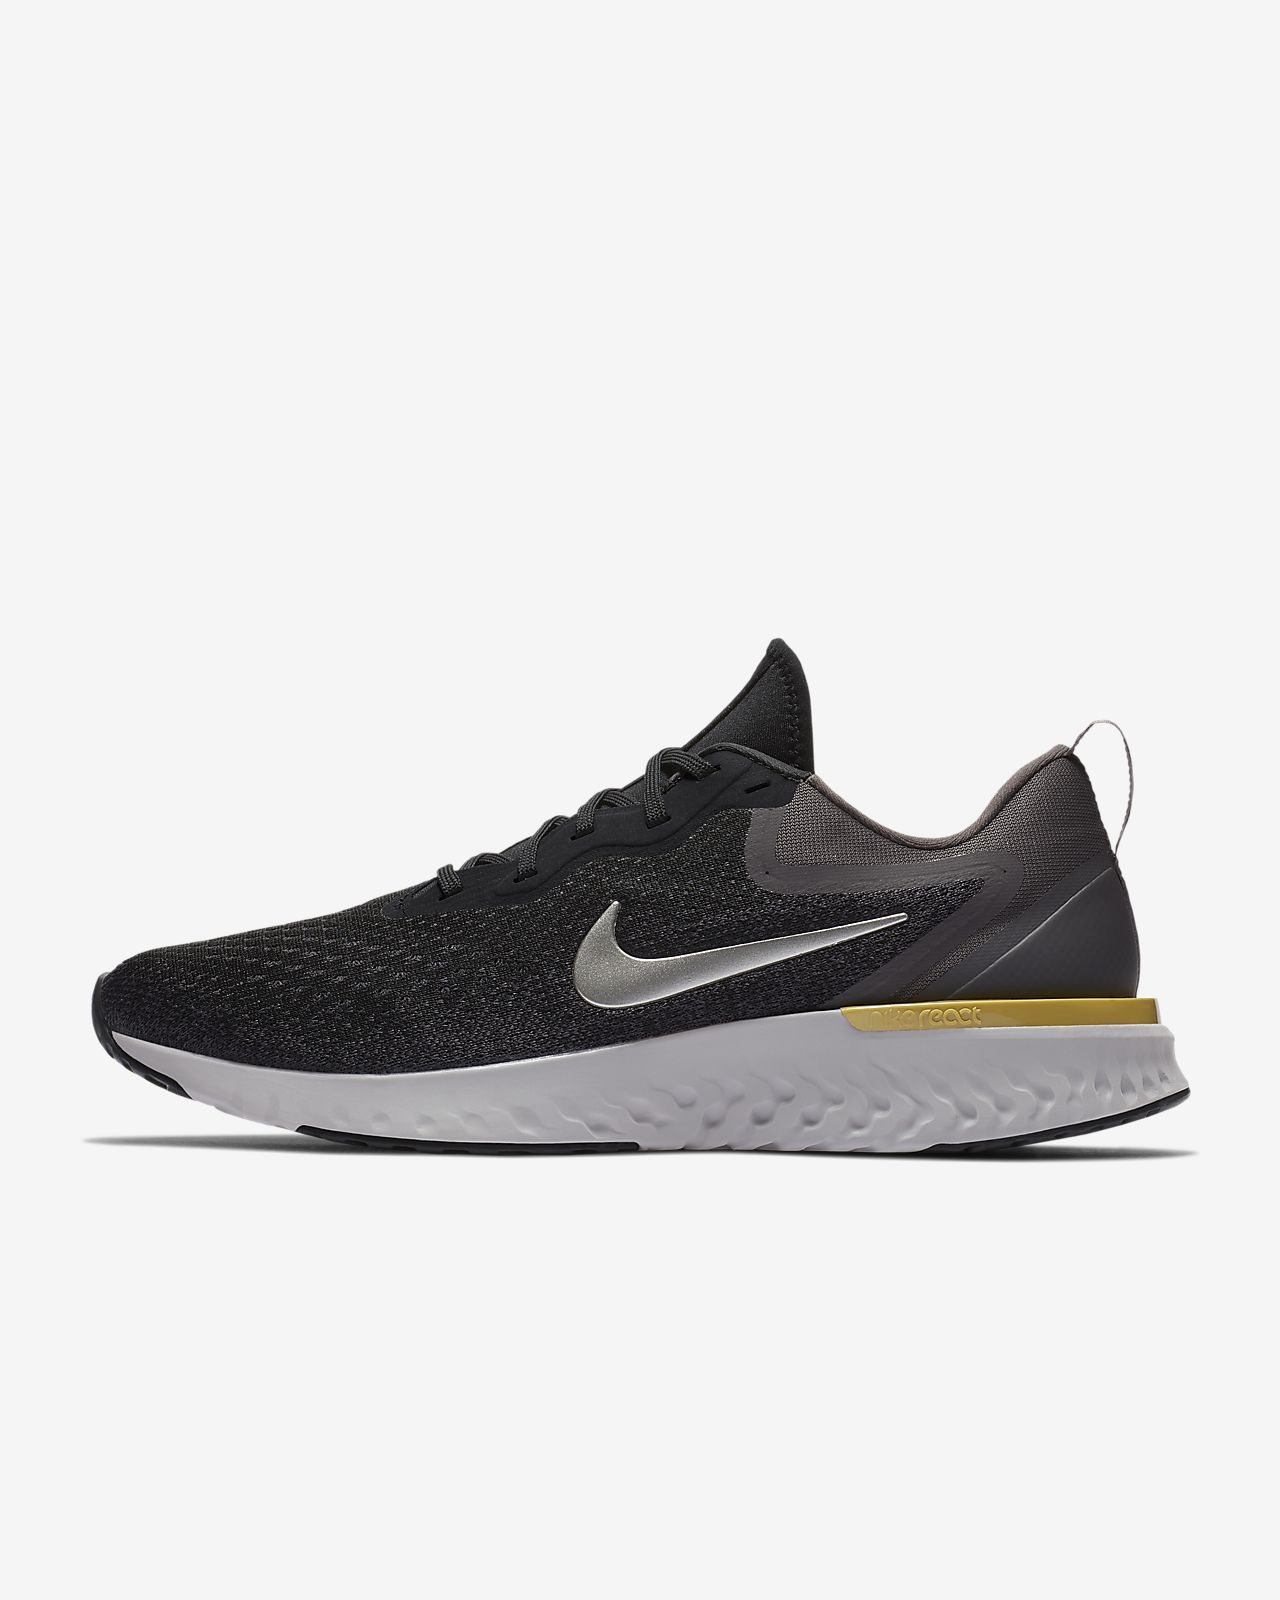 huge selection of e870a 8ee0e ... Chaussure de running Nike Odyssey React pour Homme